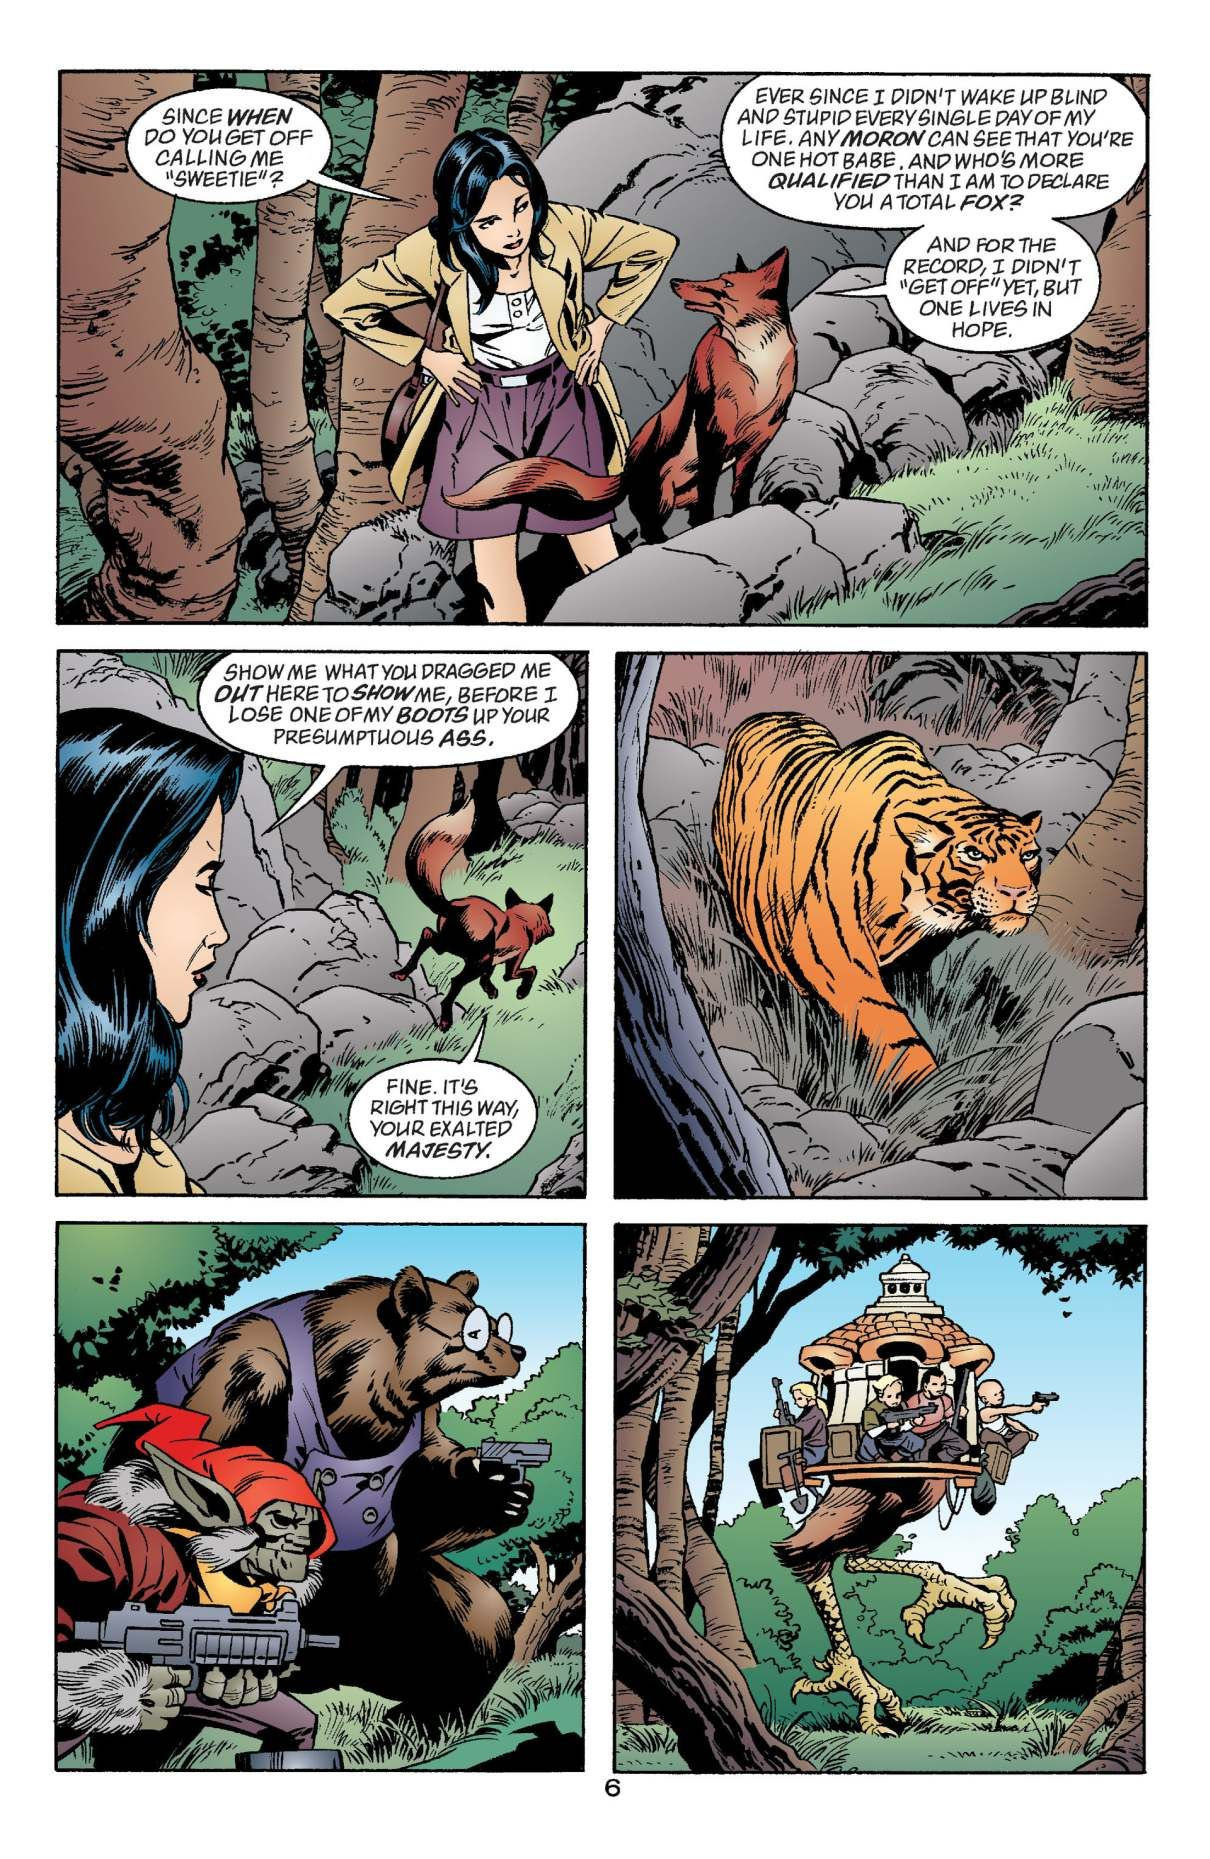 Read Comics Online Free Fables Chapter 008 Page 7 Fables Comic Read Comics Online Free Comics Online